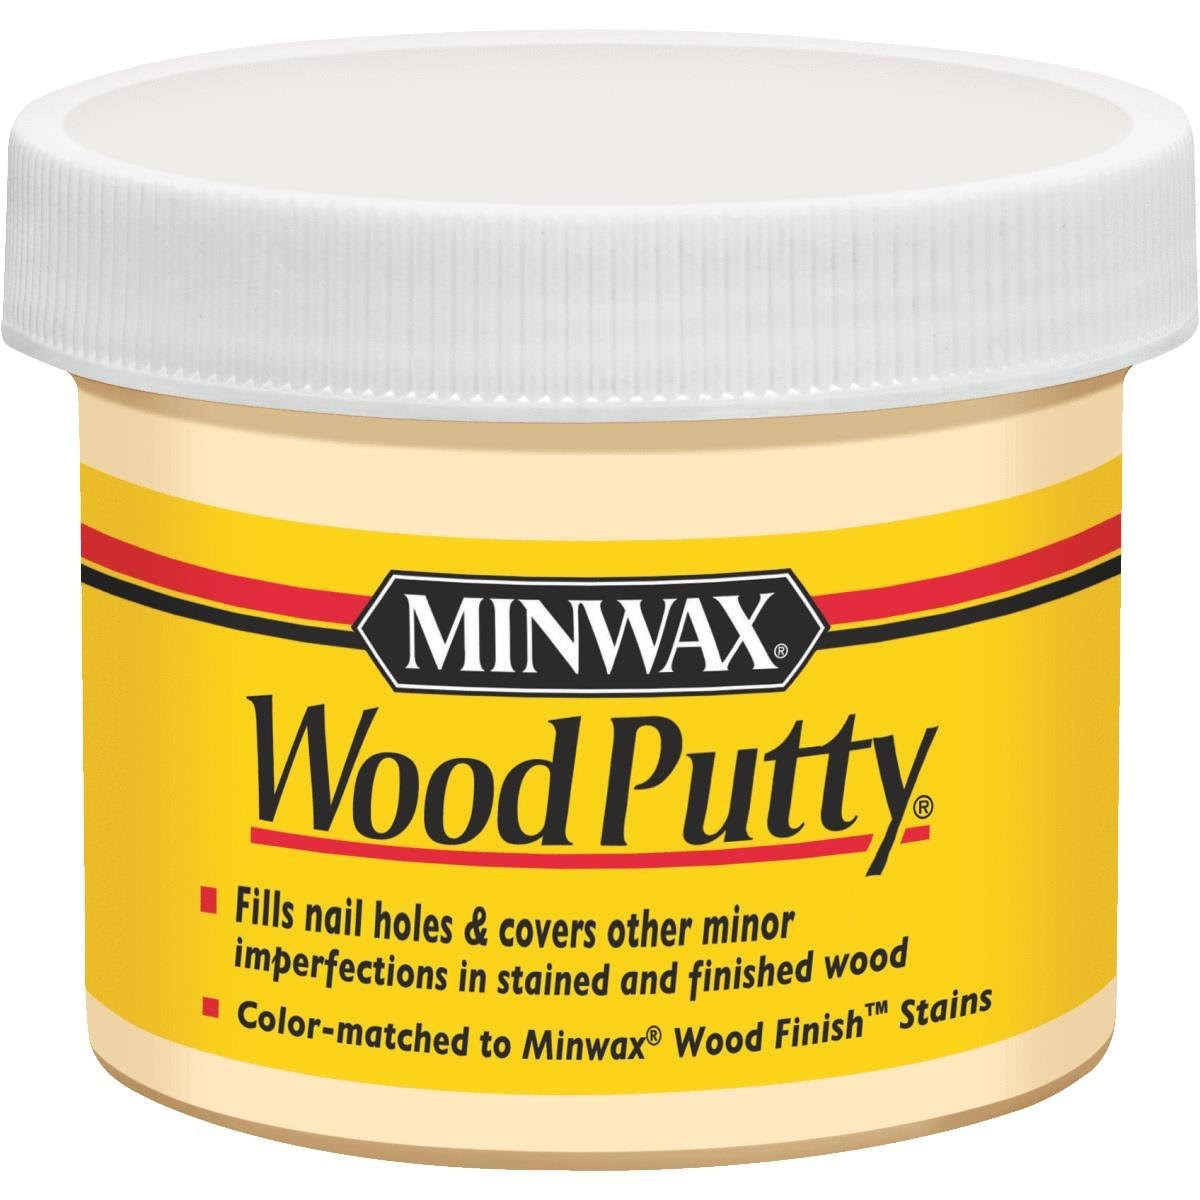 Minwax Wood Putty Natural Pine - 3.75 Oz